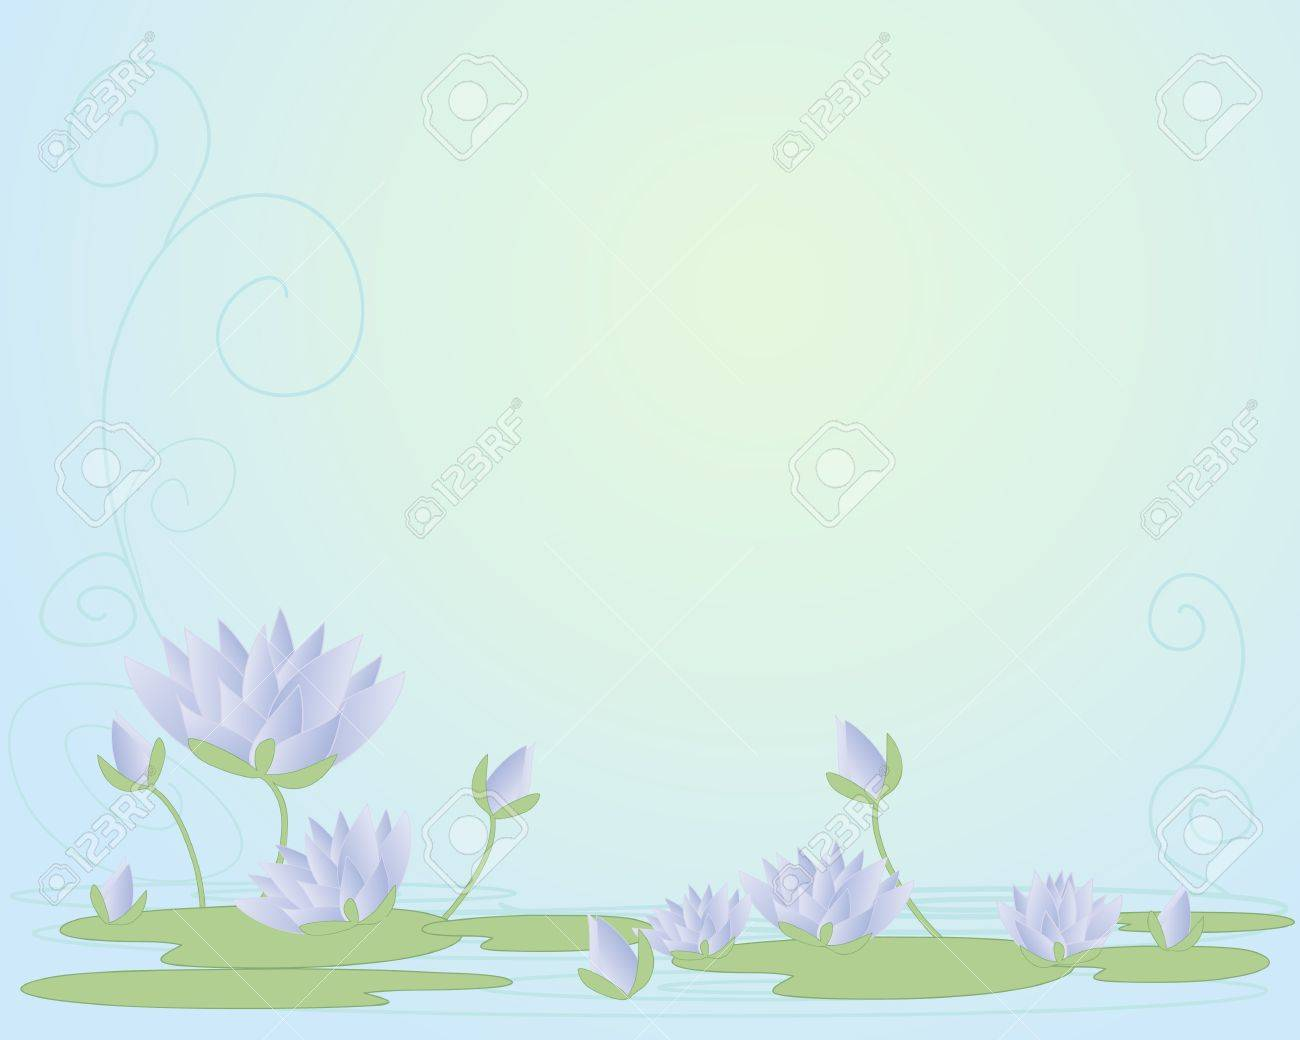 an illustration of beautiful purple water lilies in abstract form with open flowers buds and lily pads on a swirly water background Stock Vector - 17510991